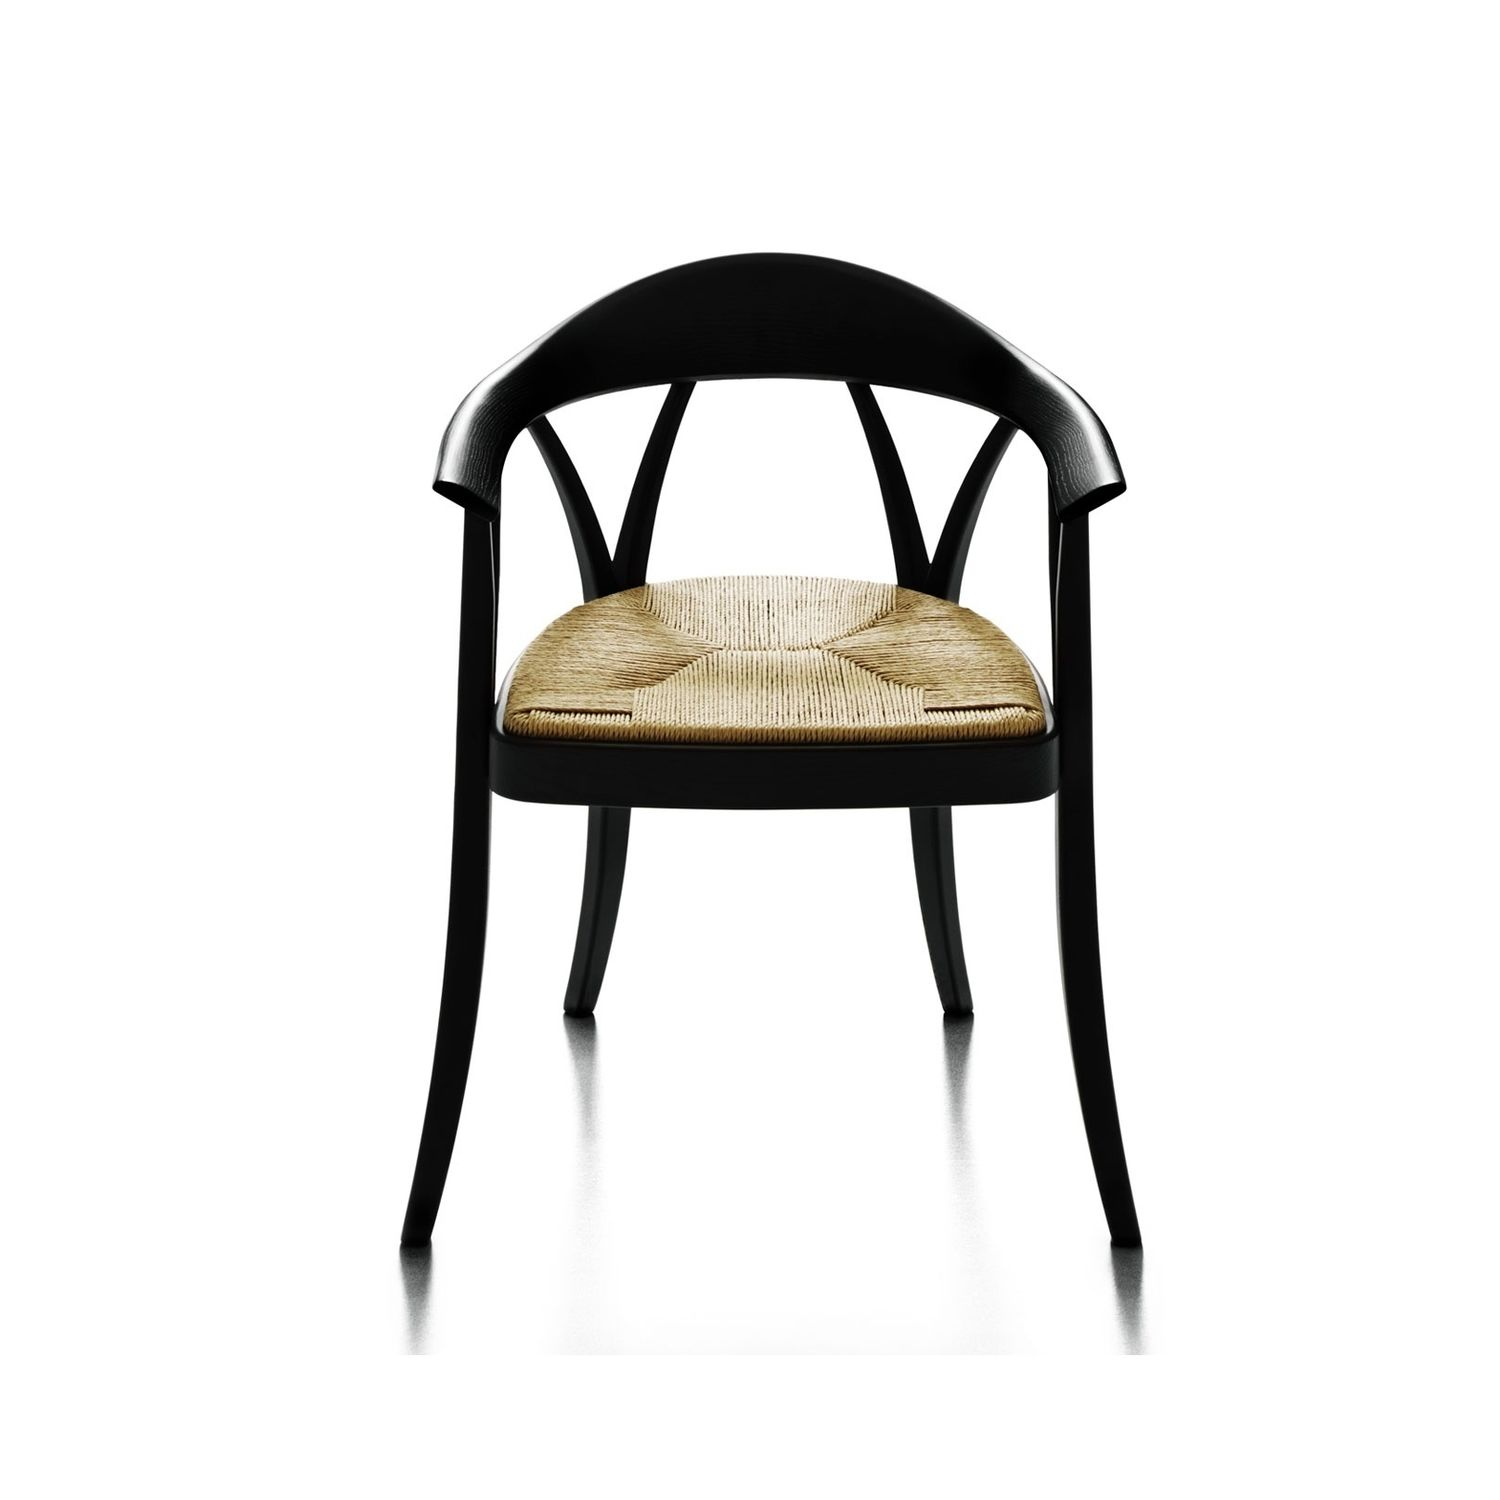 Paille Gsvzmpqu Accoudoirs Avec Chaise Bois En Contemporaine N8wm0nv